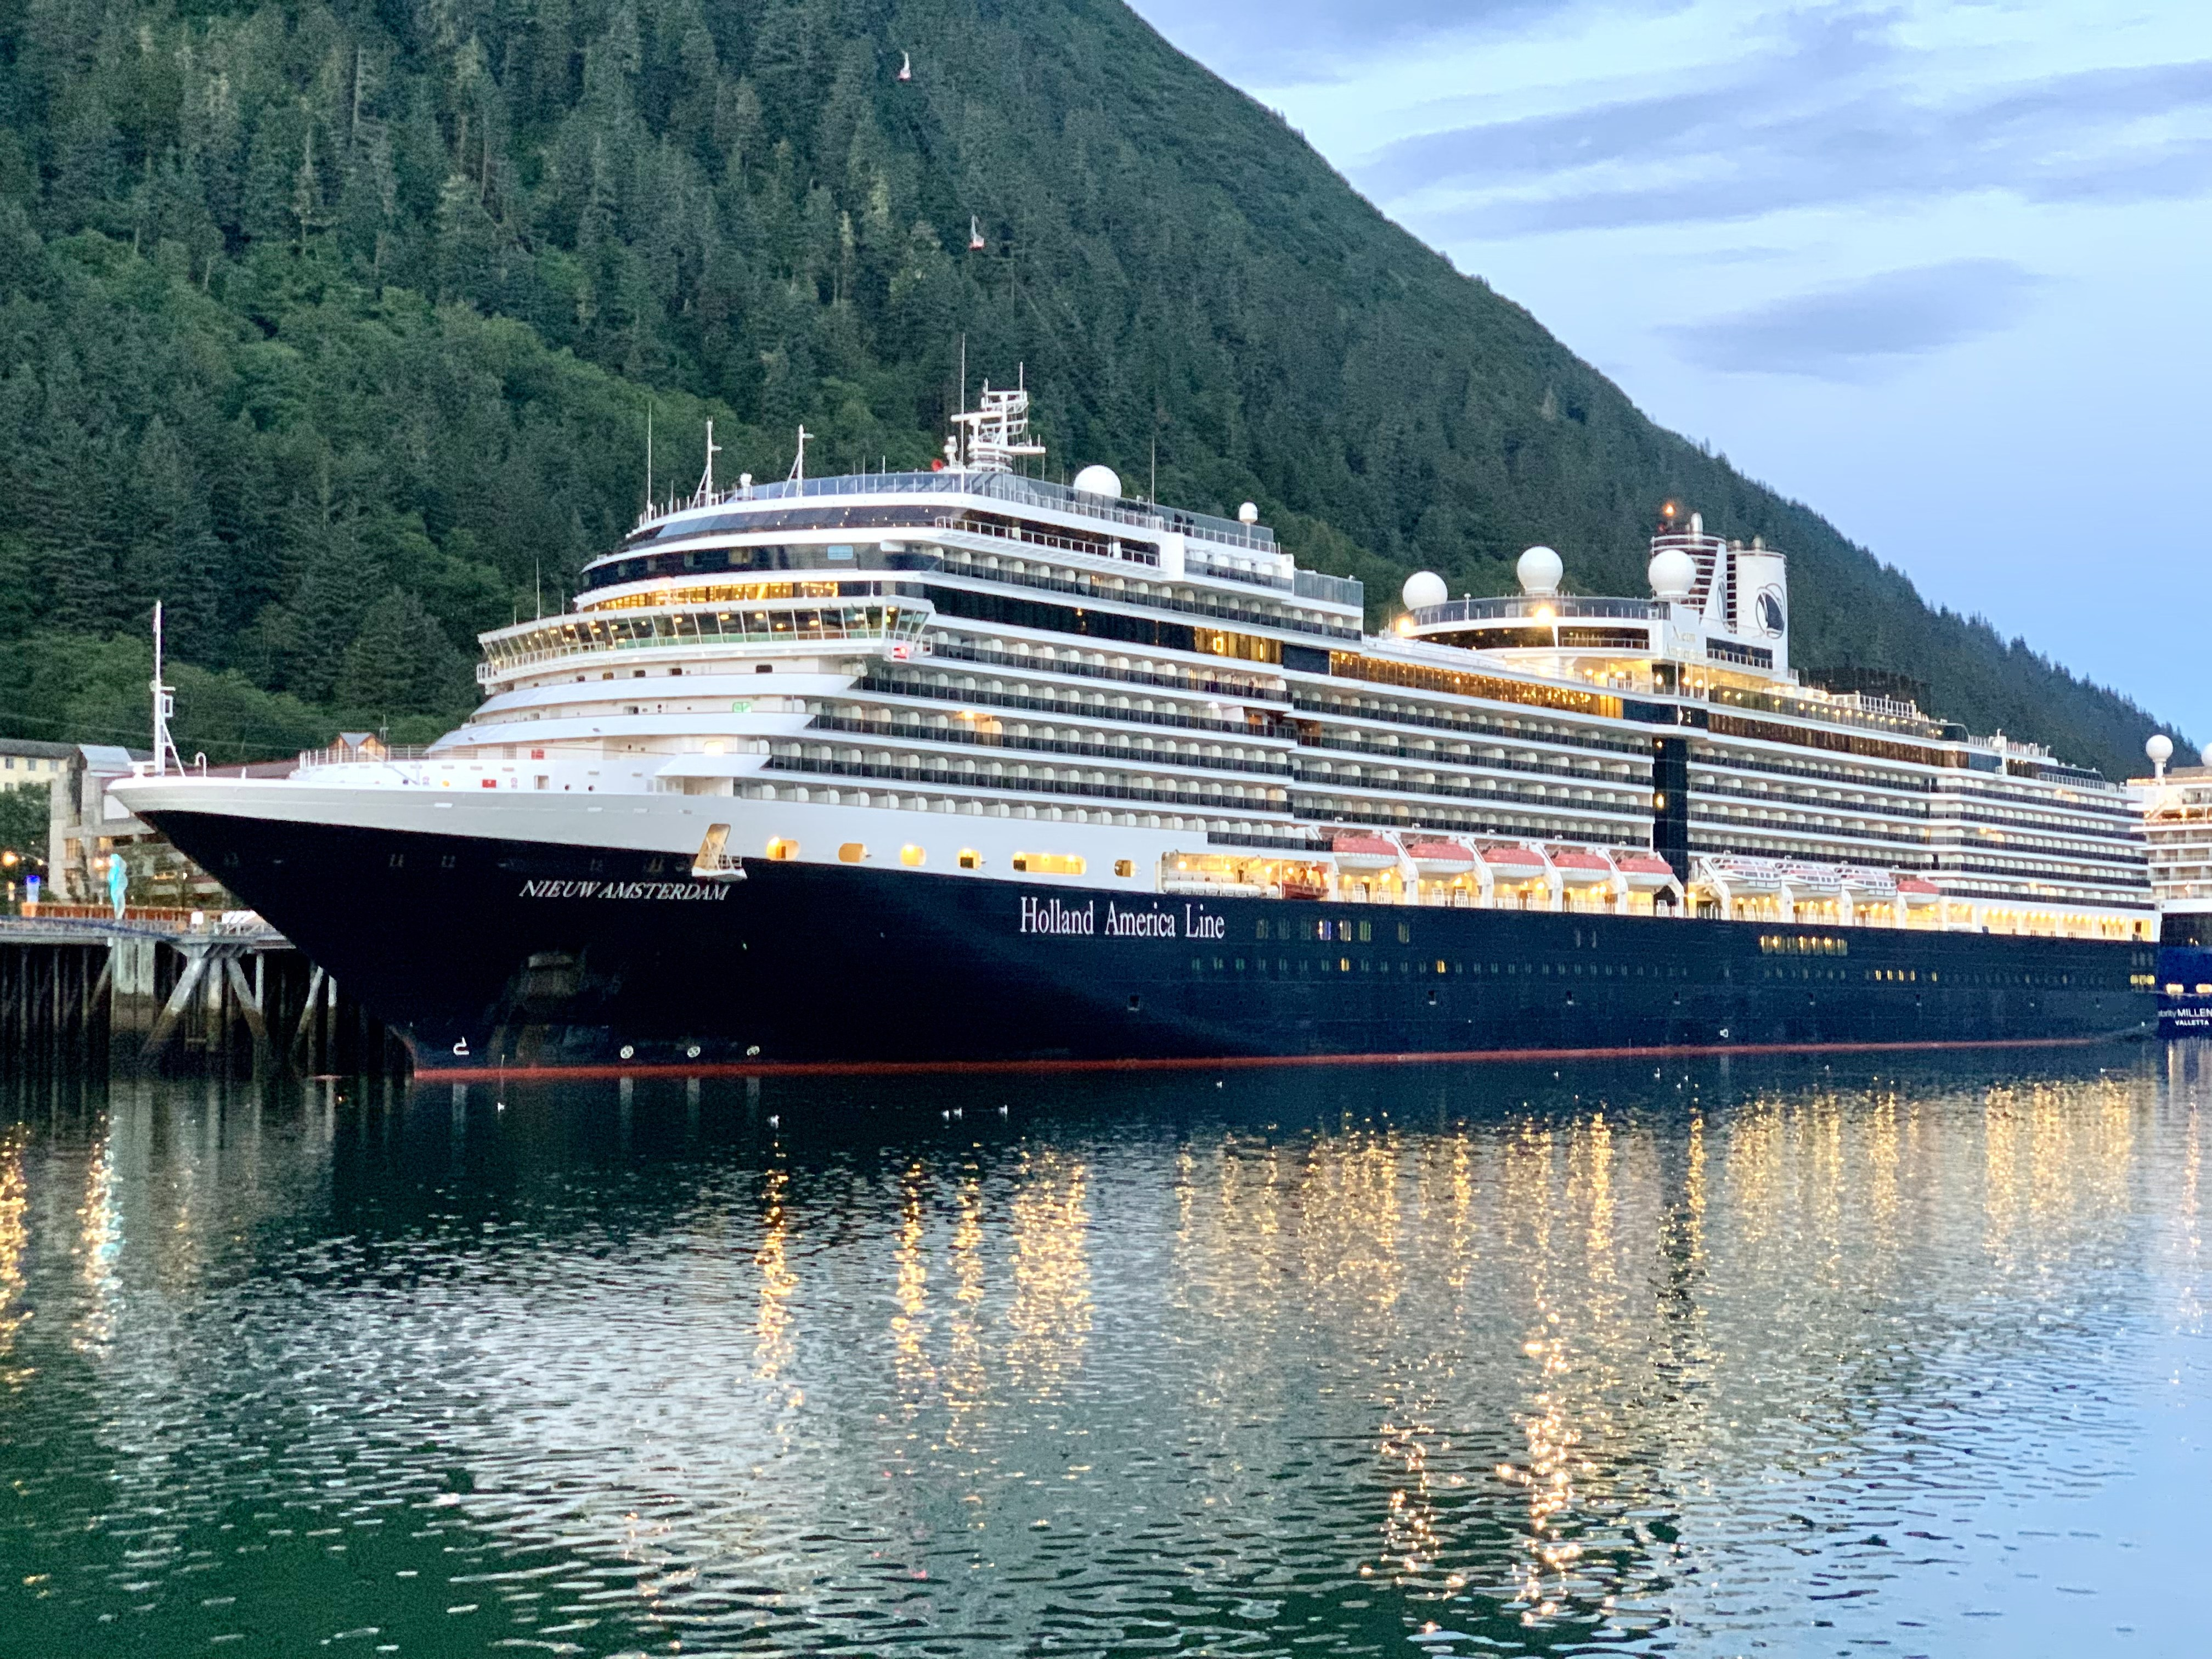 Top Things to Do on Holland America Line in Alaska